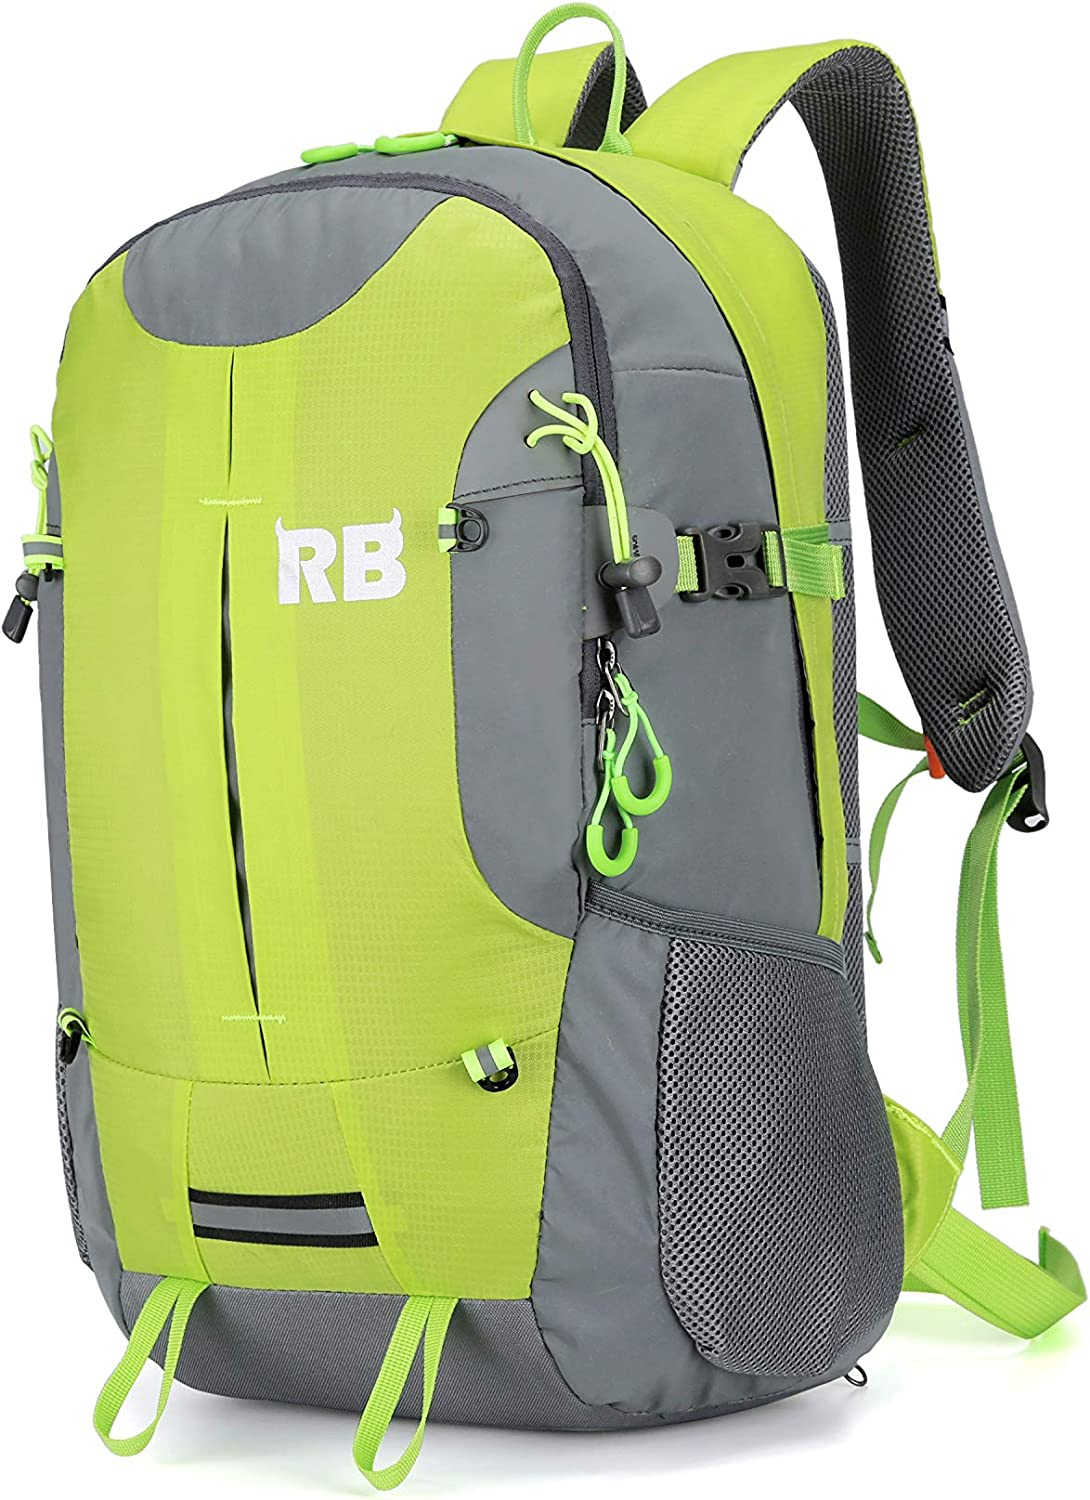 Reflective Backpack for riders and outdoor, Hi Viz fluor backpack for men, RiderBag Reflektor 35 G. Great for motorcycle and bike. Backpacks for running. Motorcycle backpack.